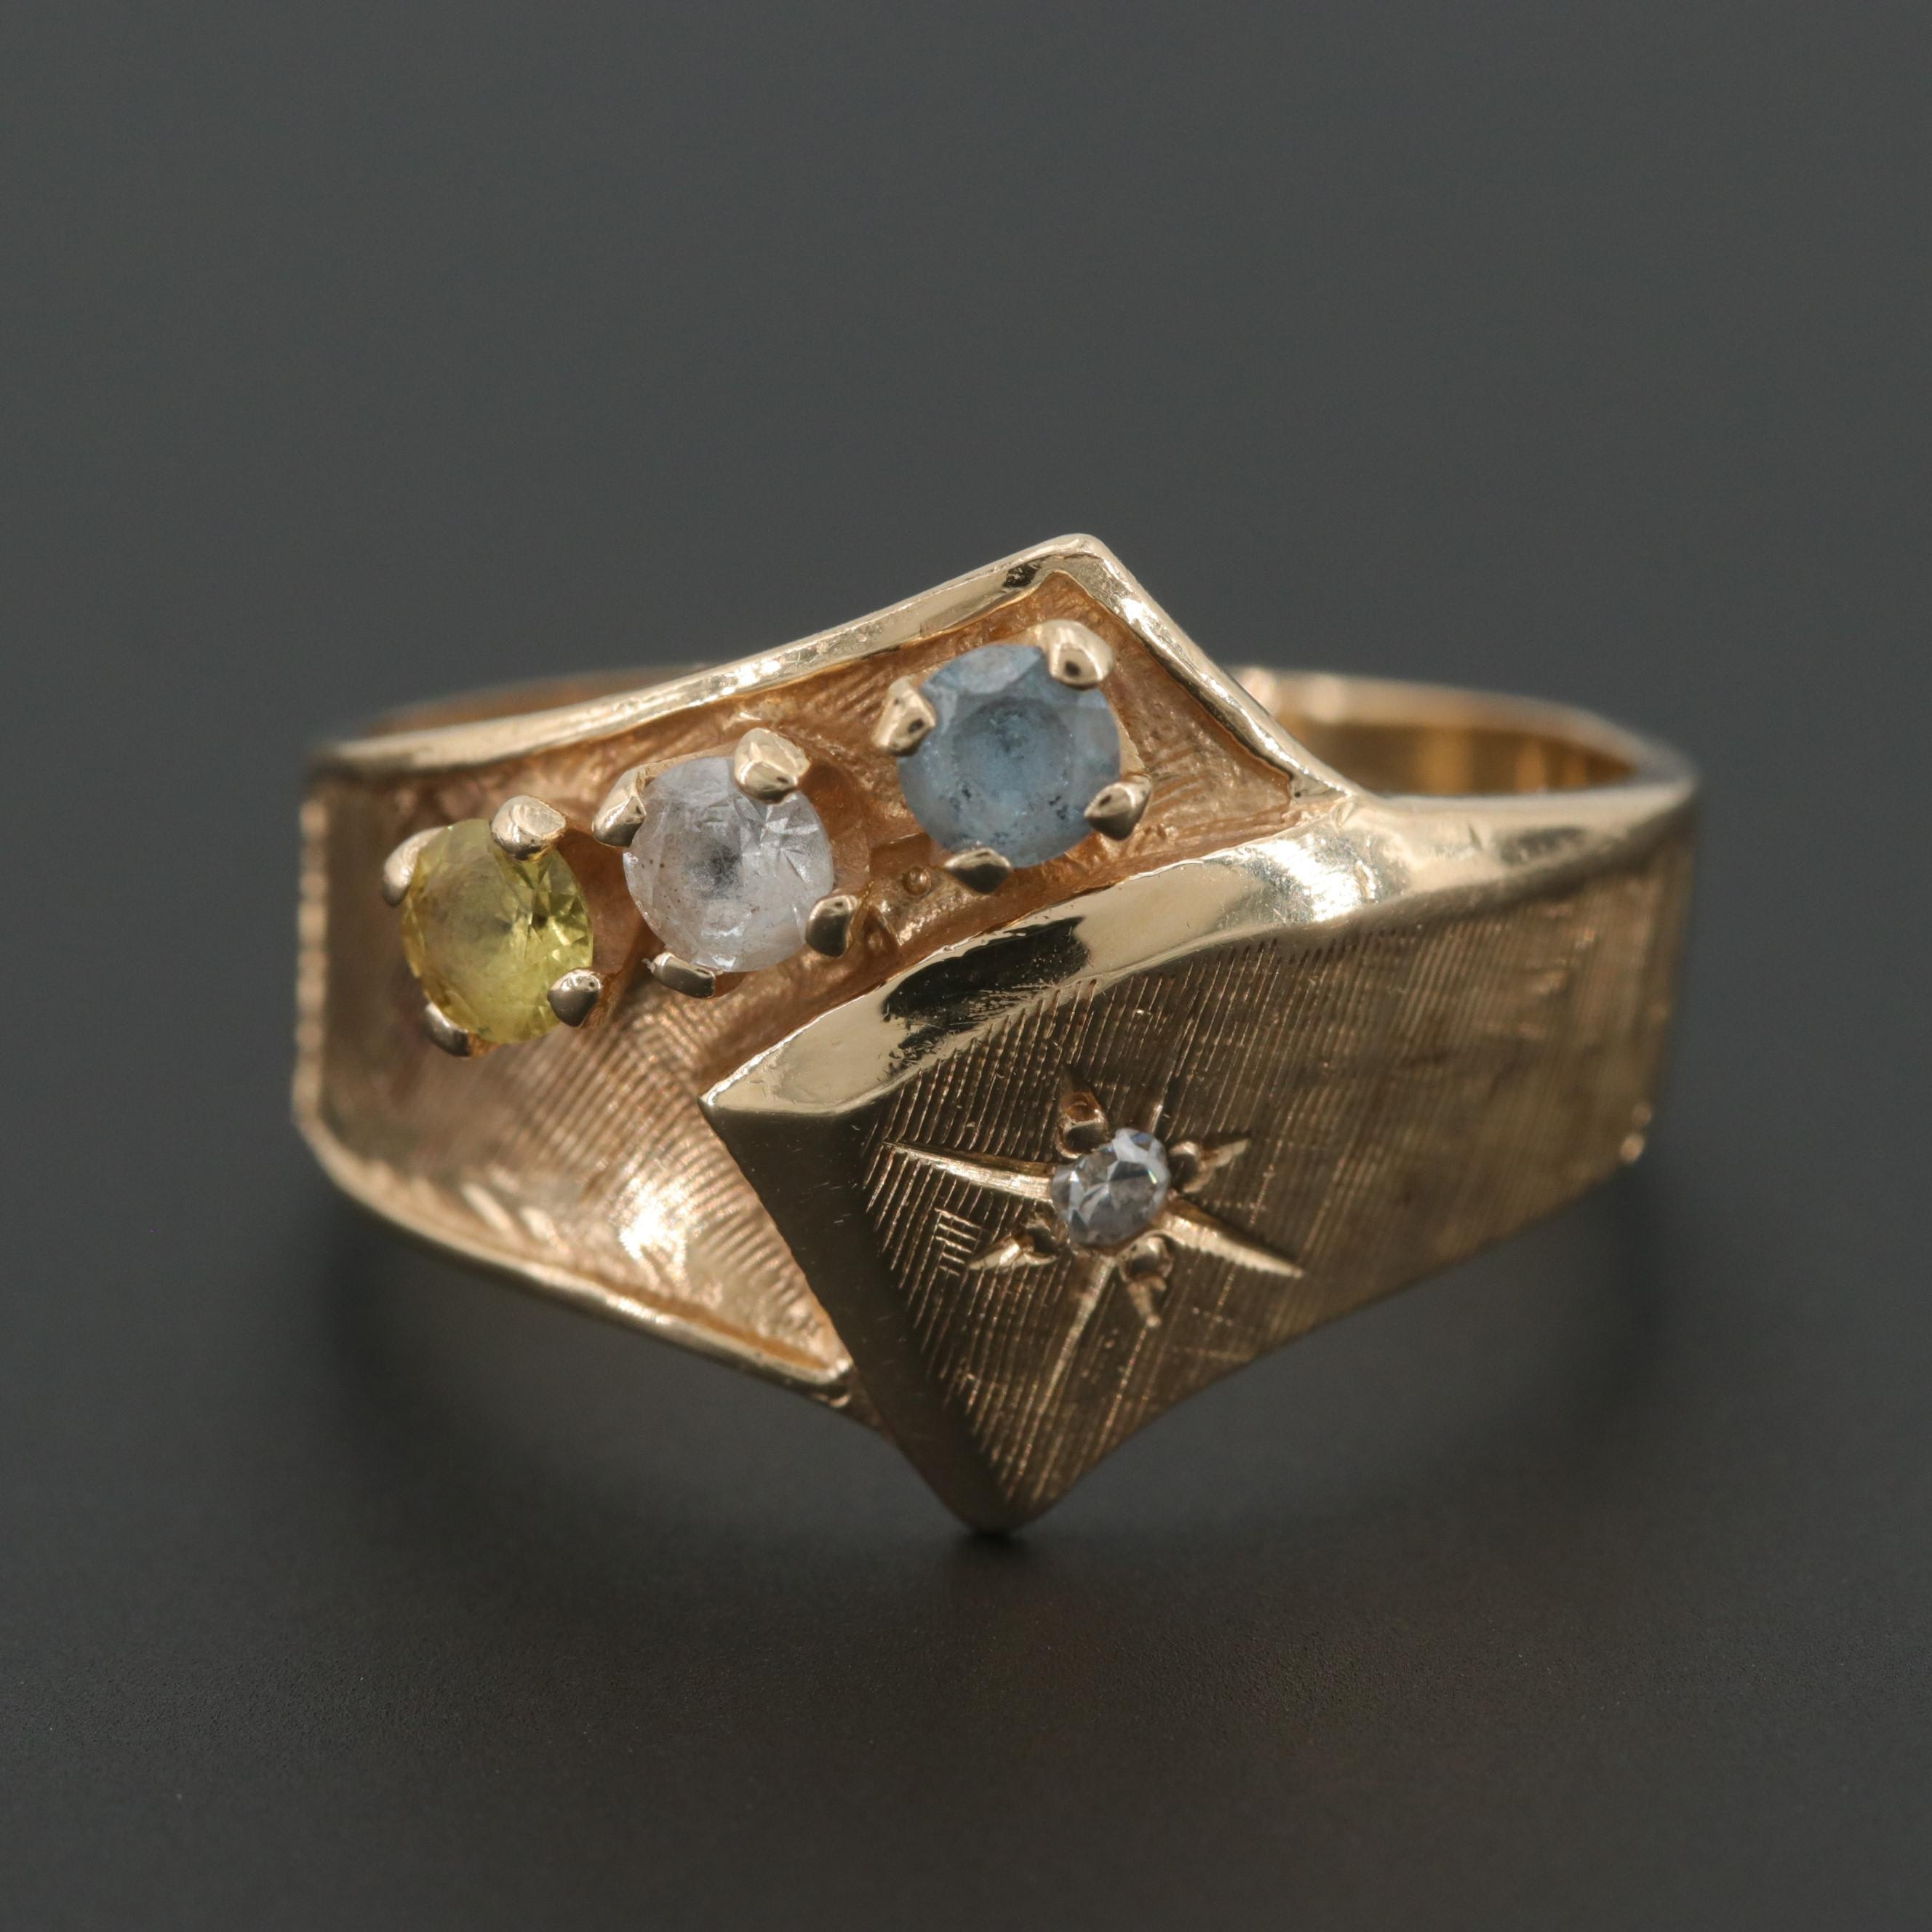 14K Yellow Gold Diamond, Synthetic Spinel and Synthetic Sapphire Ring